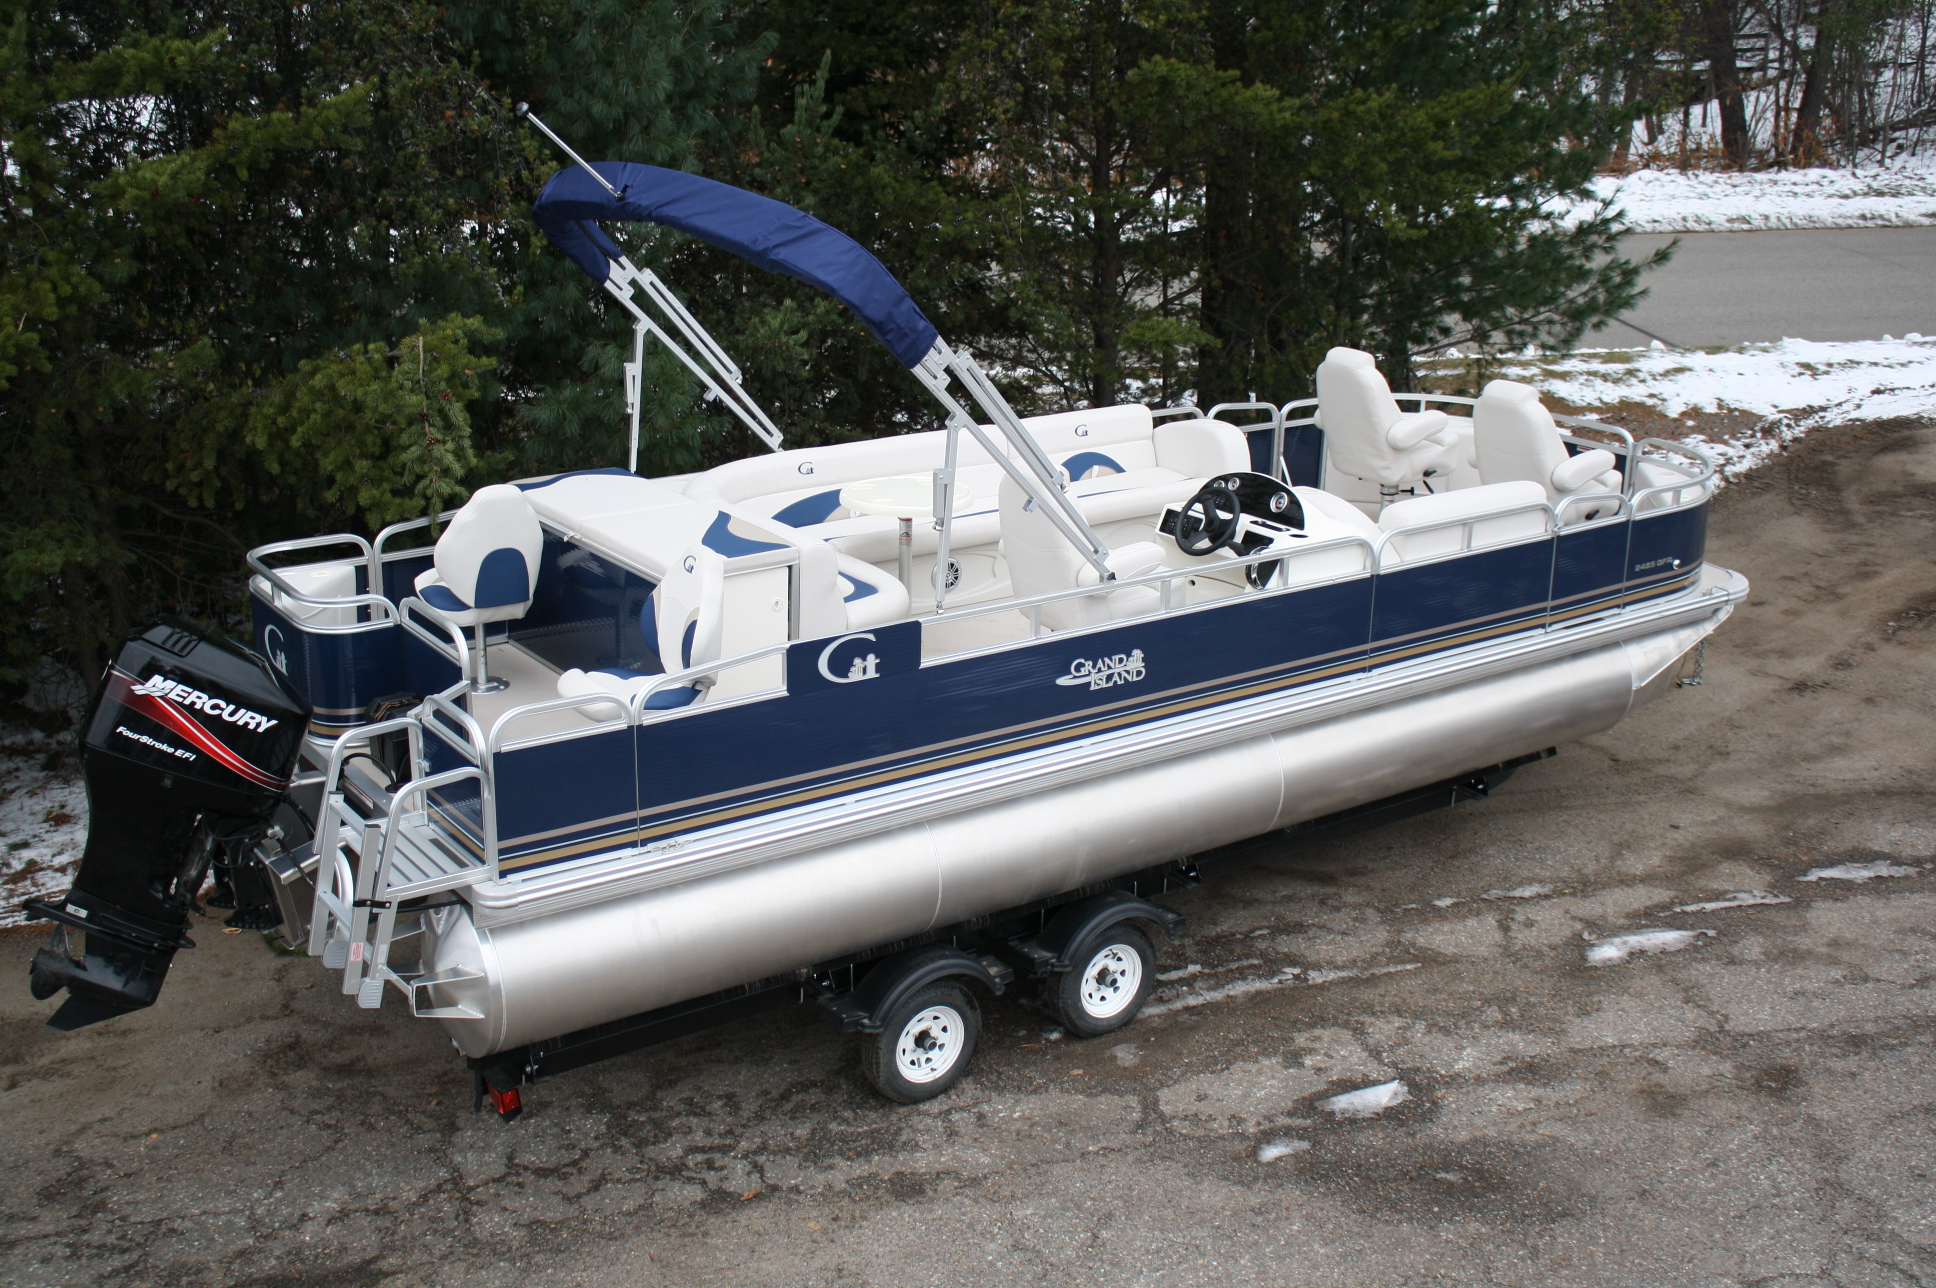 2017 Tahoe Grand Island 2485 Fnf Rc Re With Used 2005